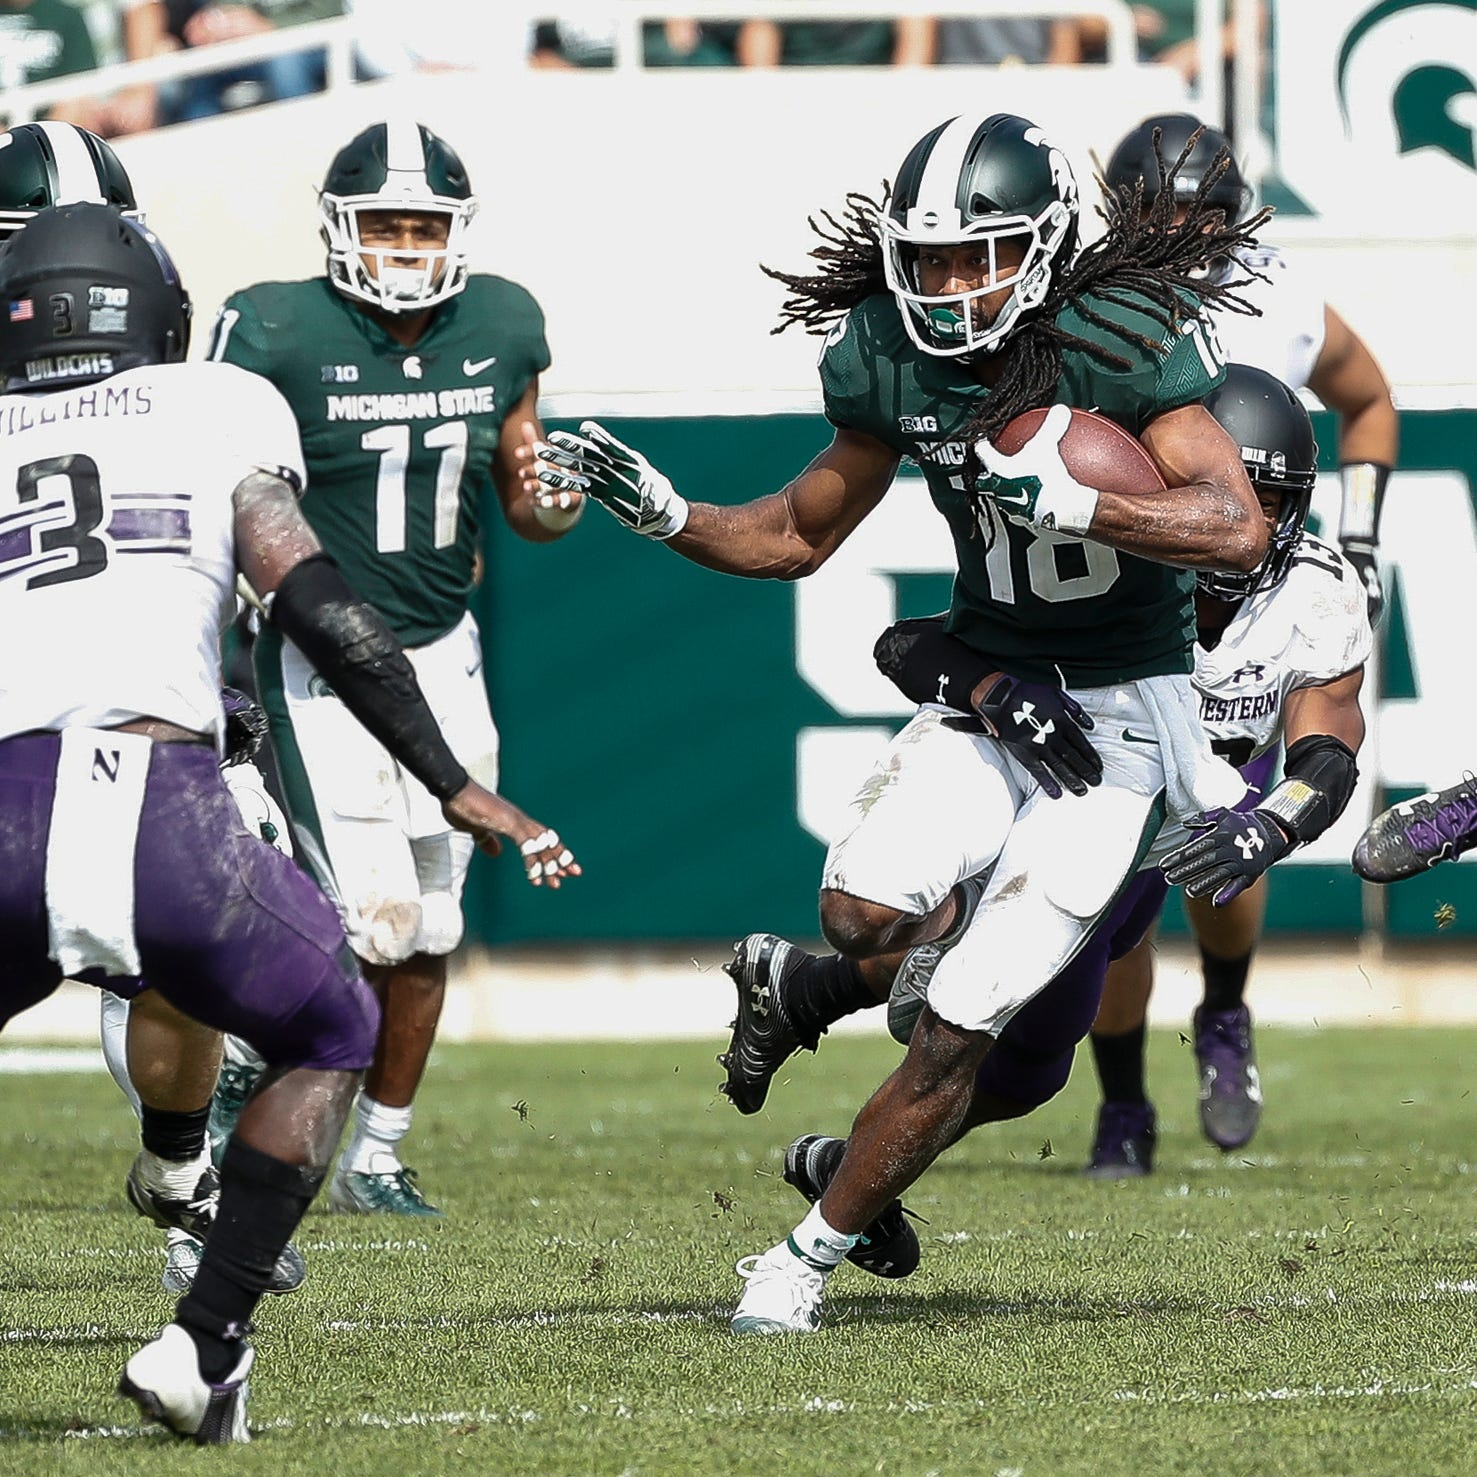 MSU's Felton Davis III to Kansas City Chiefs as UDFA, other signings